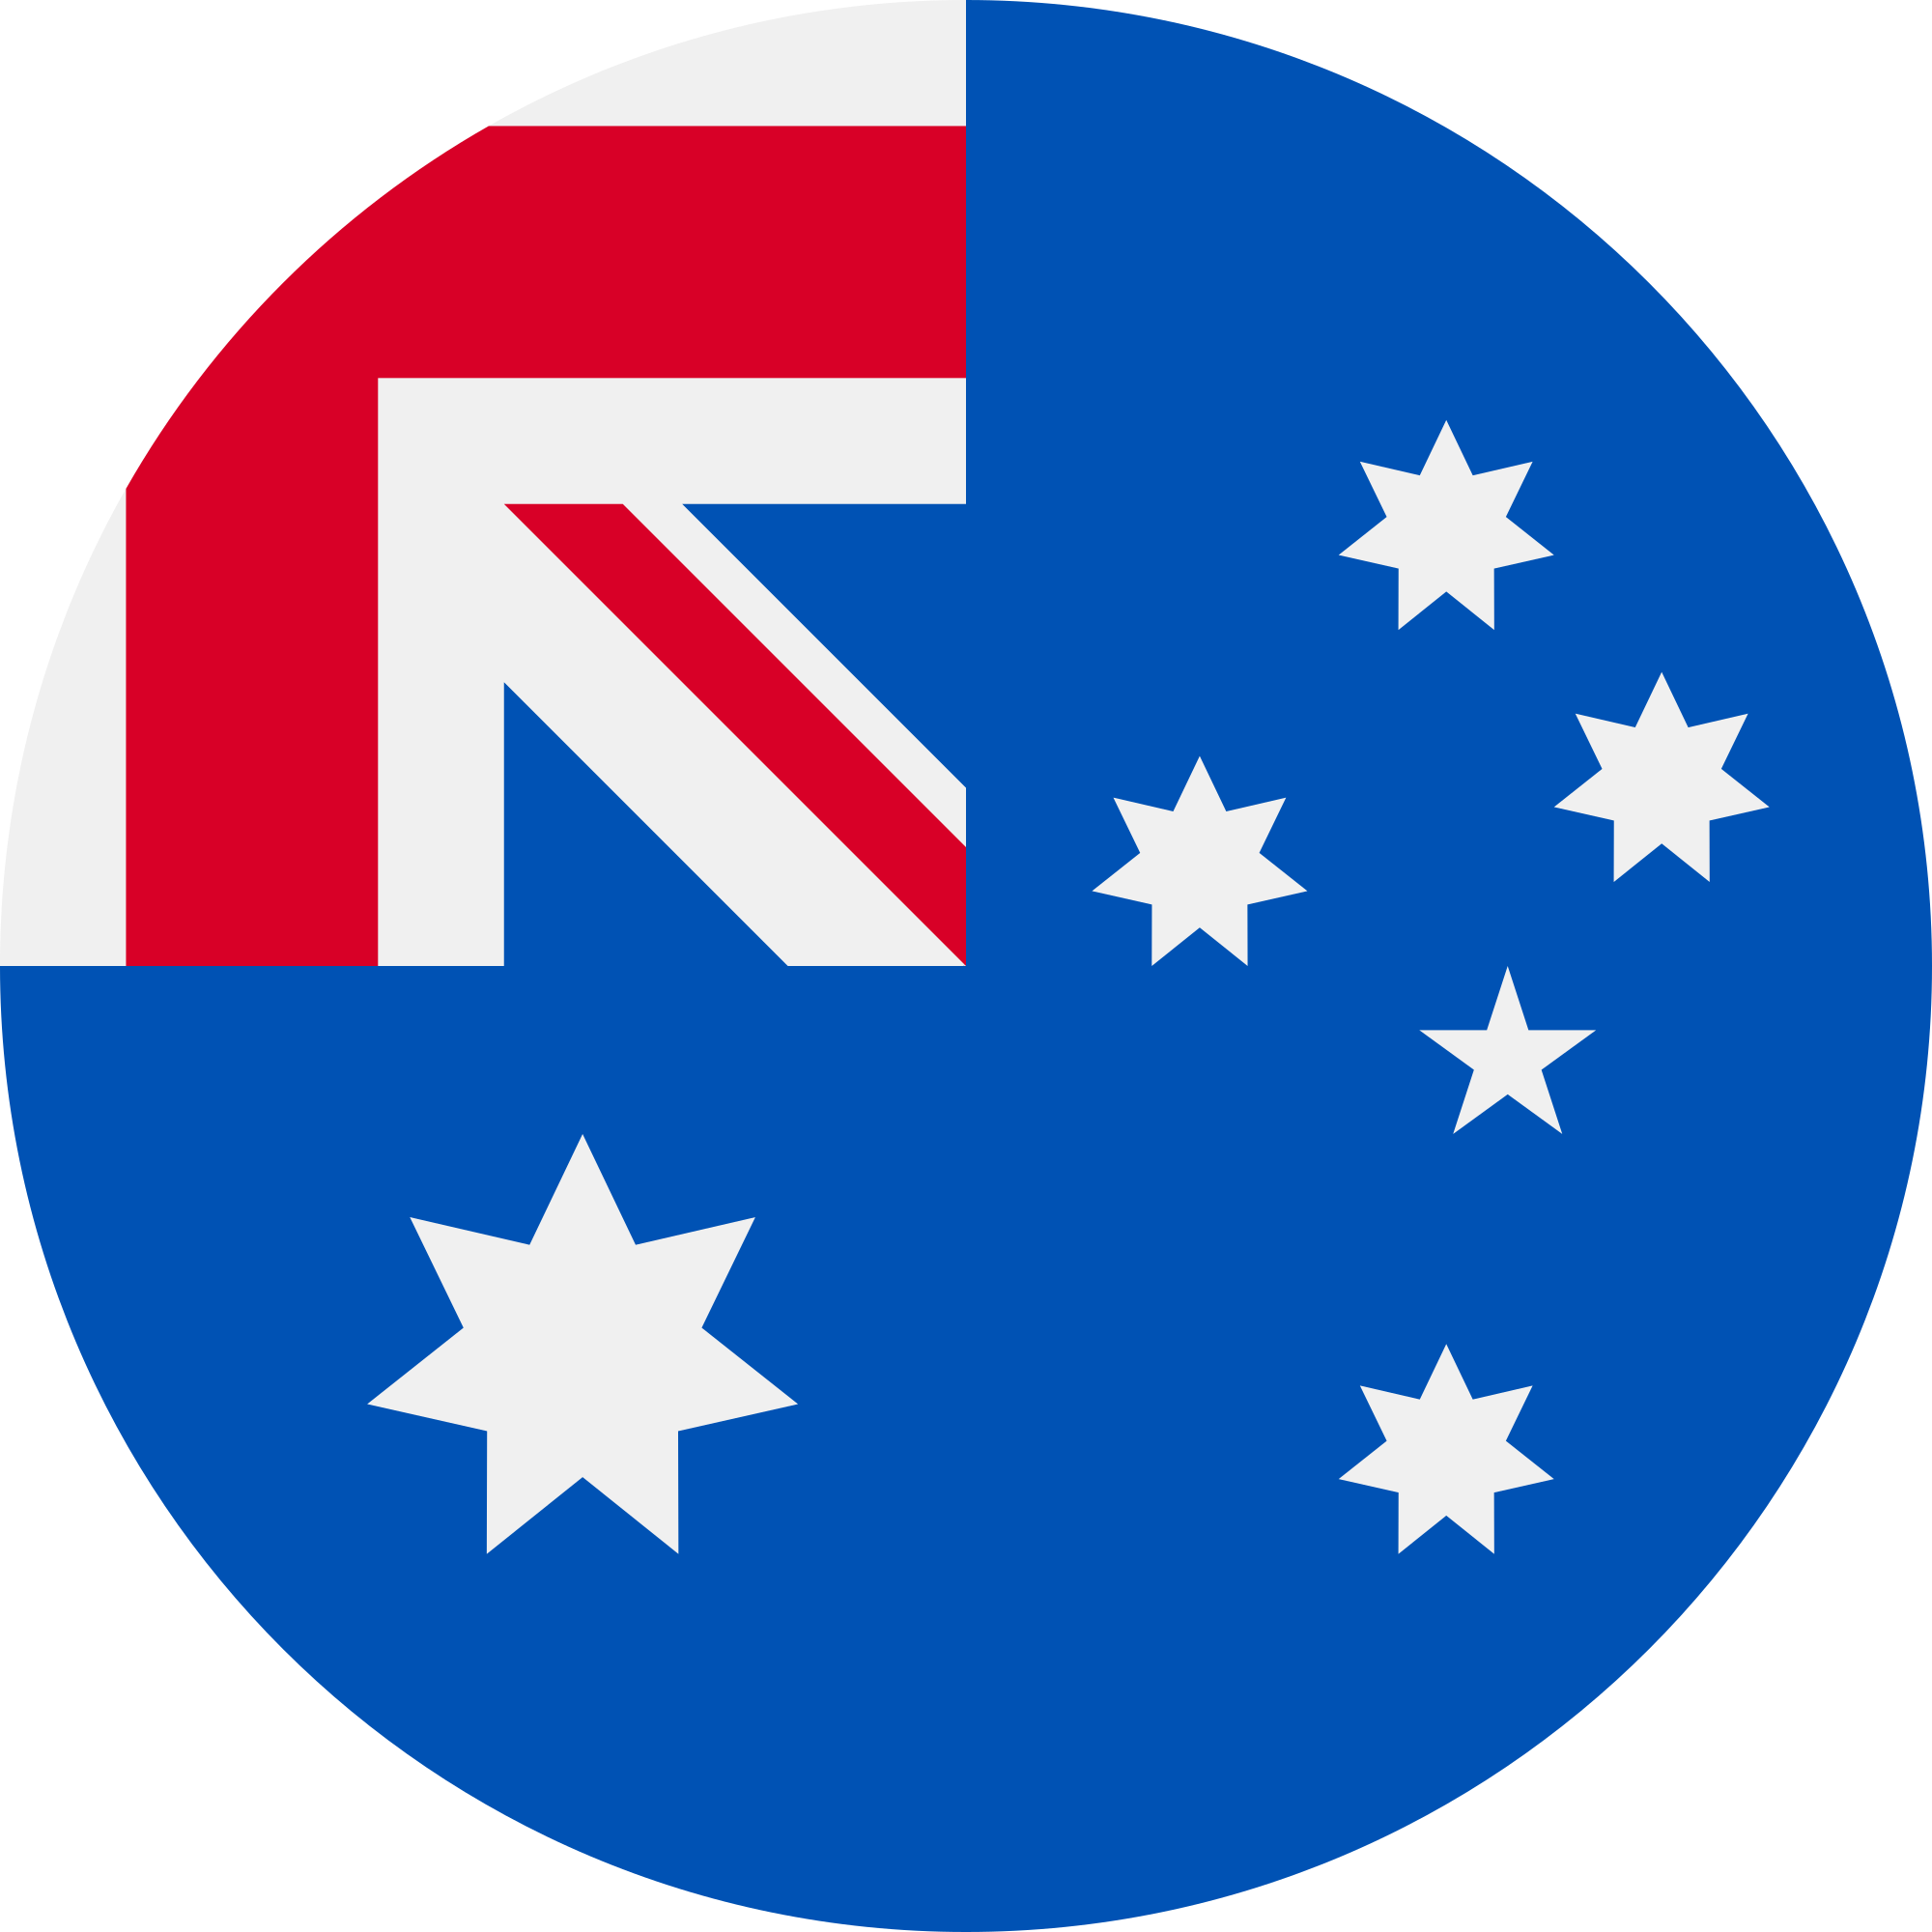 Australia flag png. File icon round svg